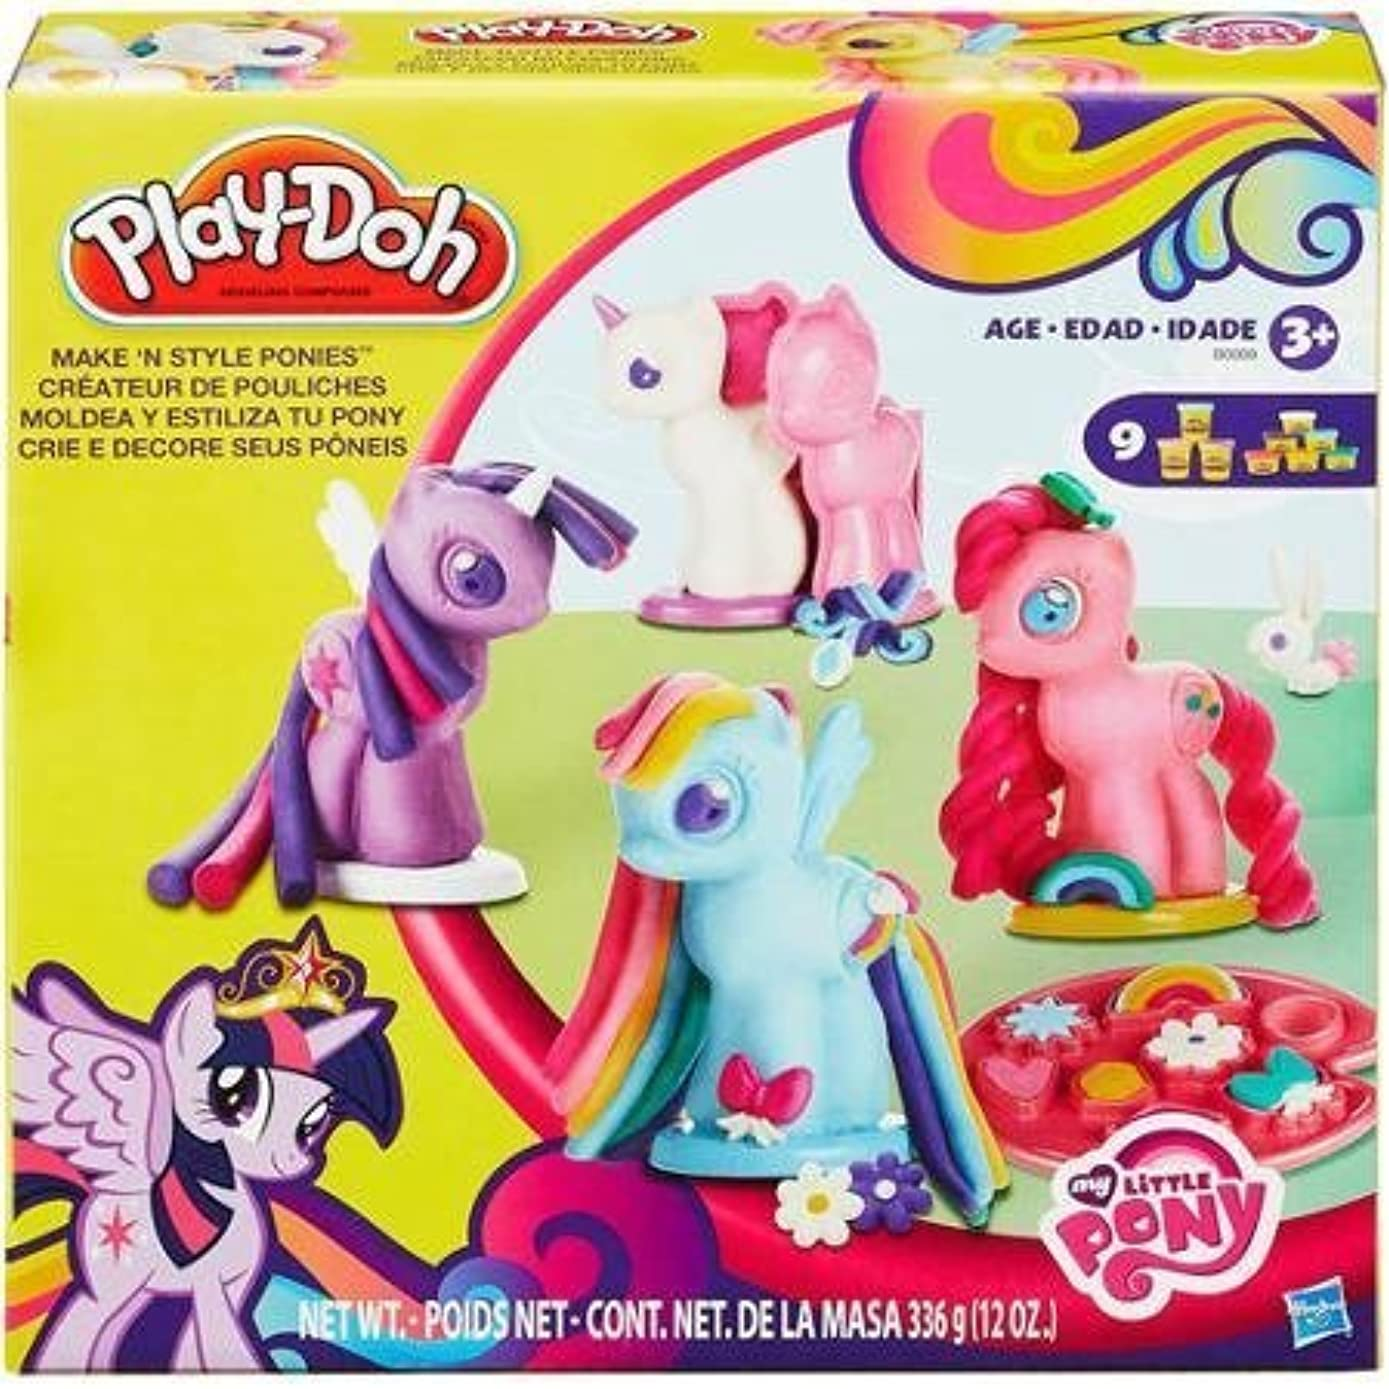 Play-Doh My Little Pony Make 'n Style Ponies, 4 molds to create each type of pony: Earth, Pegasus, Unicorns and Princesses by Illuminations [並行輸入品]